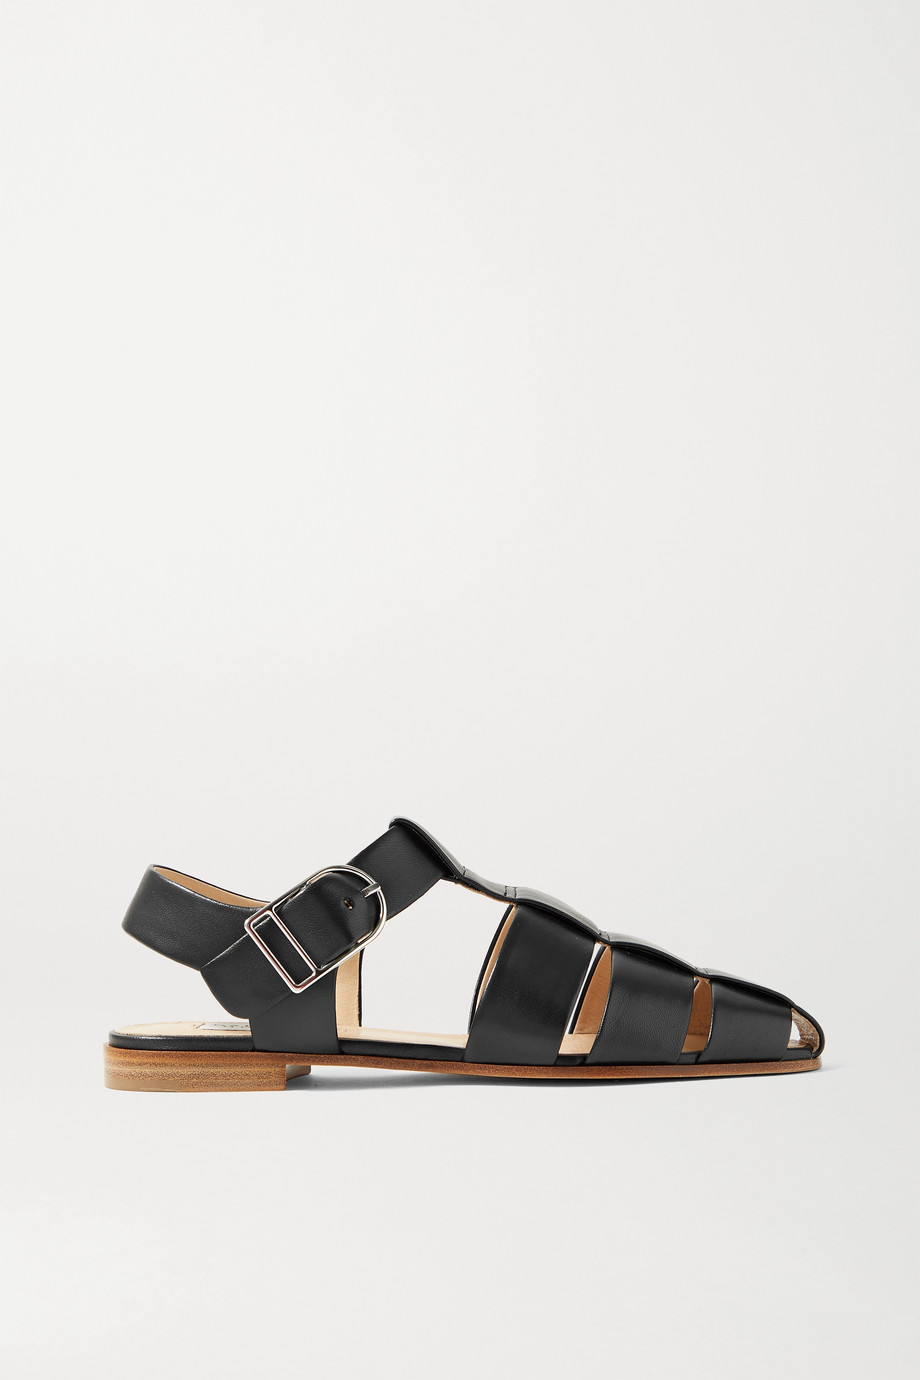 GABRIELA HEARST Lynn leather sandals